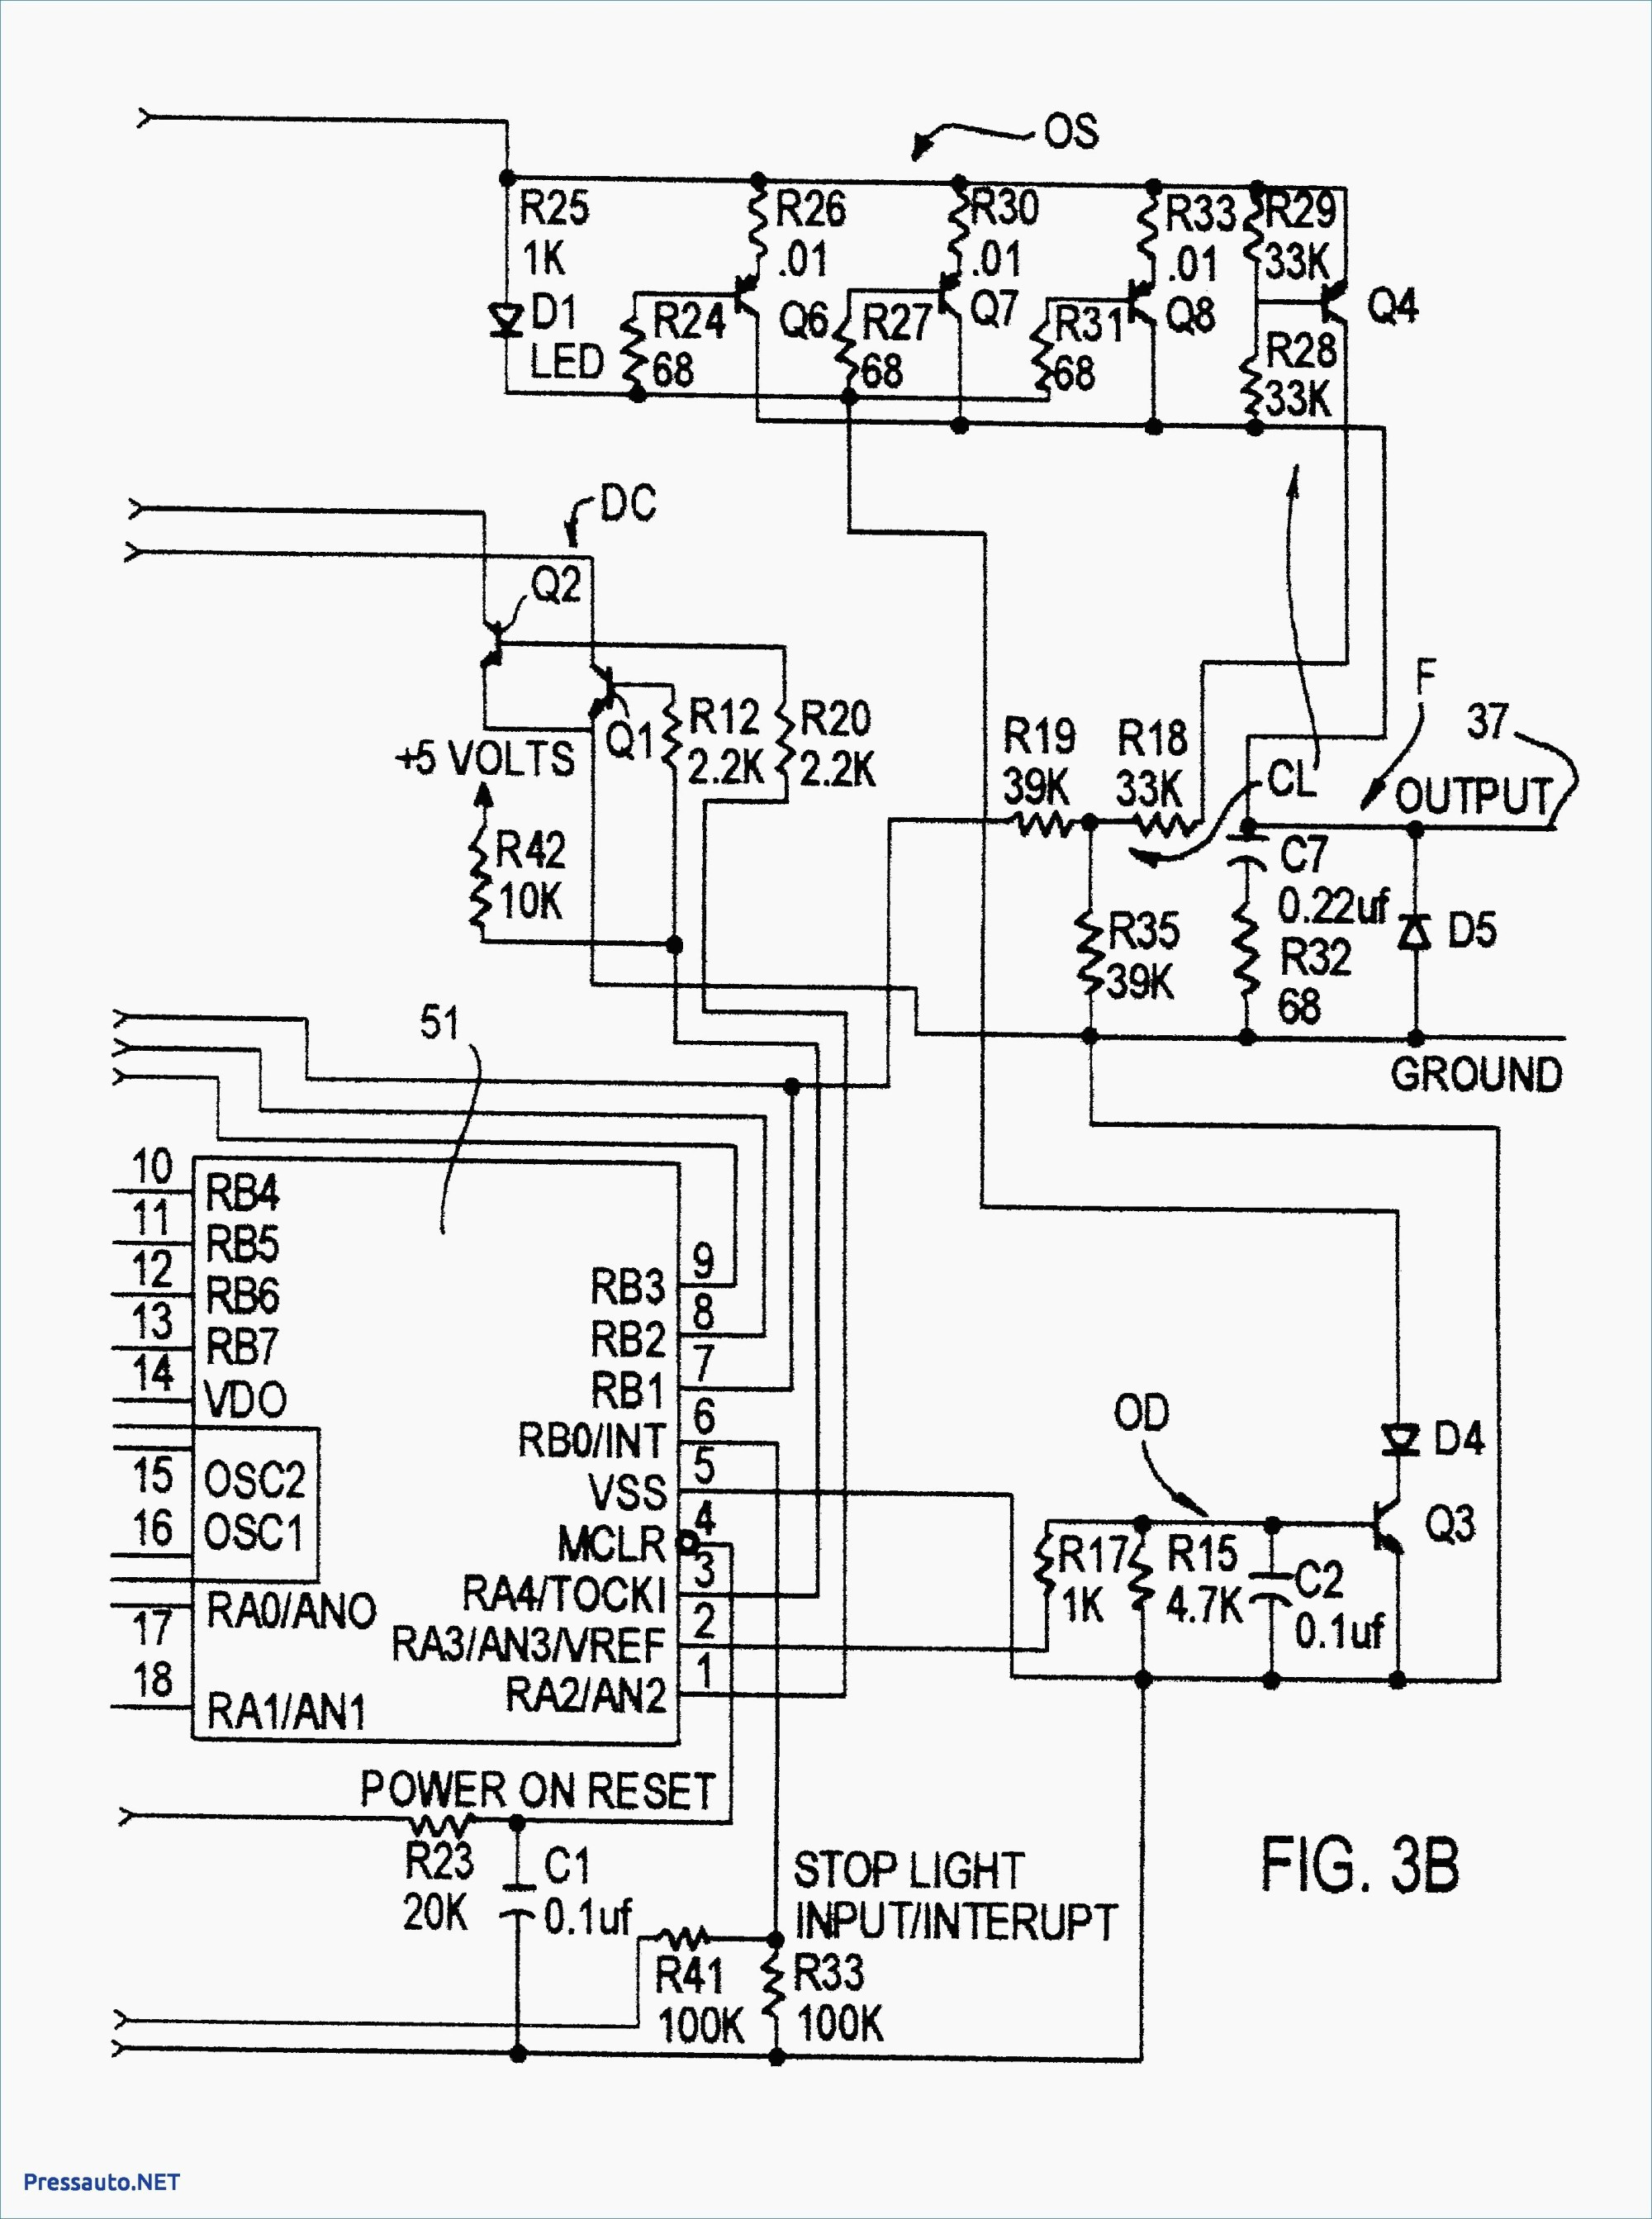 hight resolution of outlet wiring diagram gfci with switch diagrams leviton gfci outlet wiring diagram auto diagrams